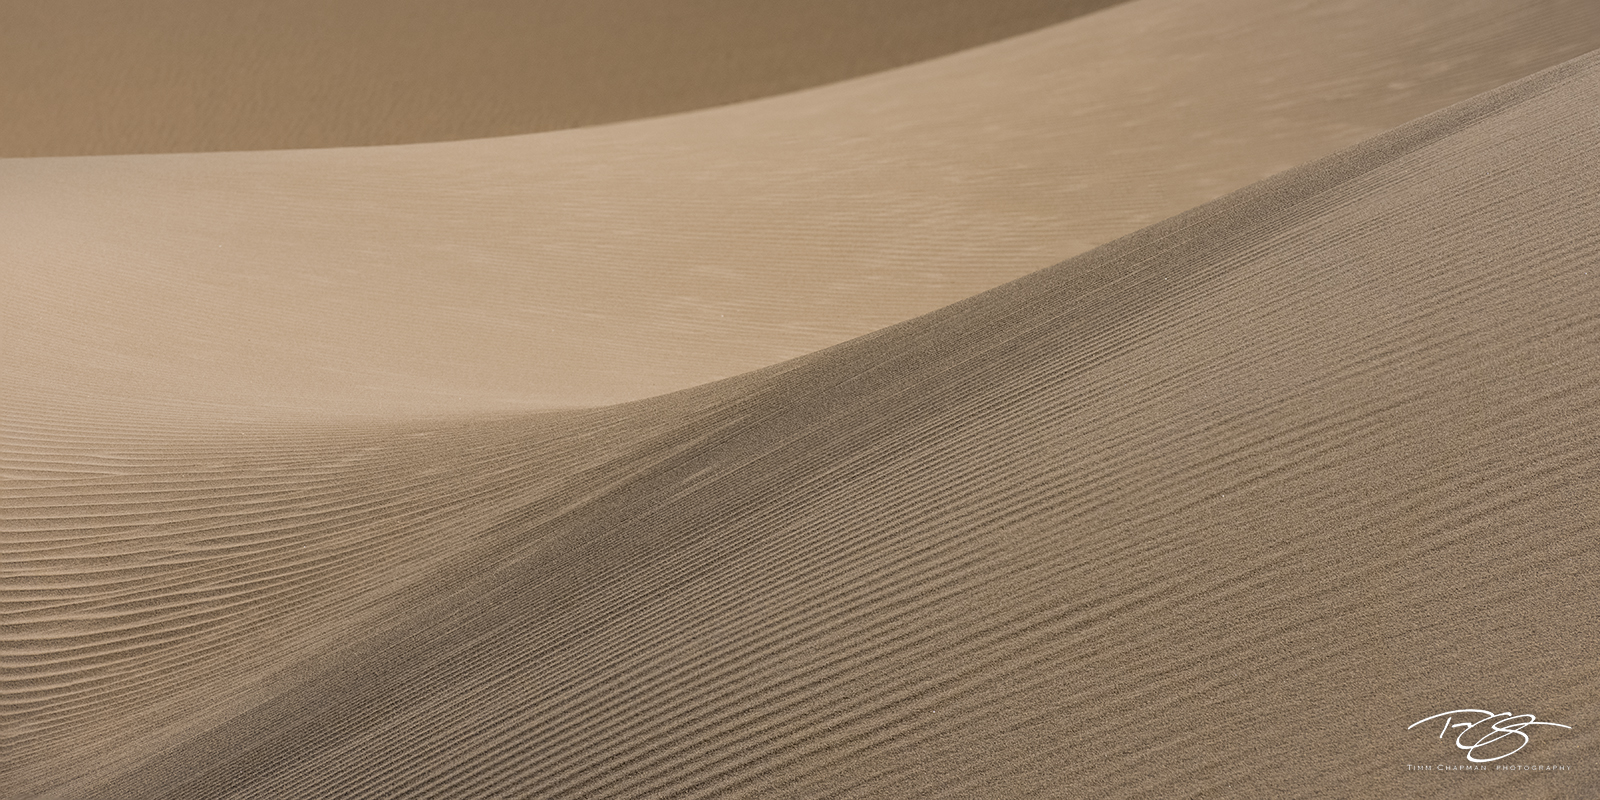 gobi desert, china, abstract, patterns, sand dune, sand, dune, desert, random precision, gobi, panorama